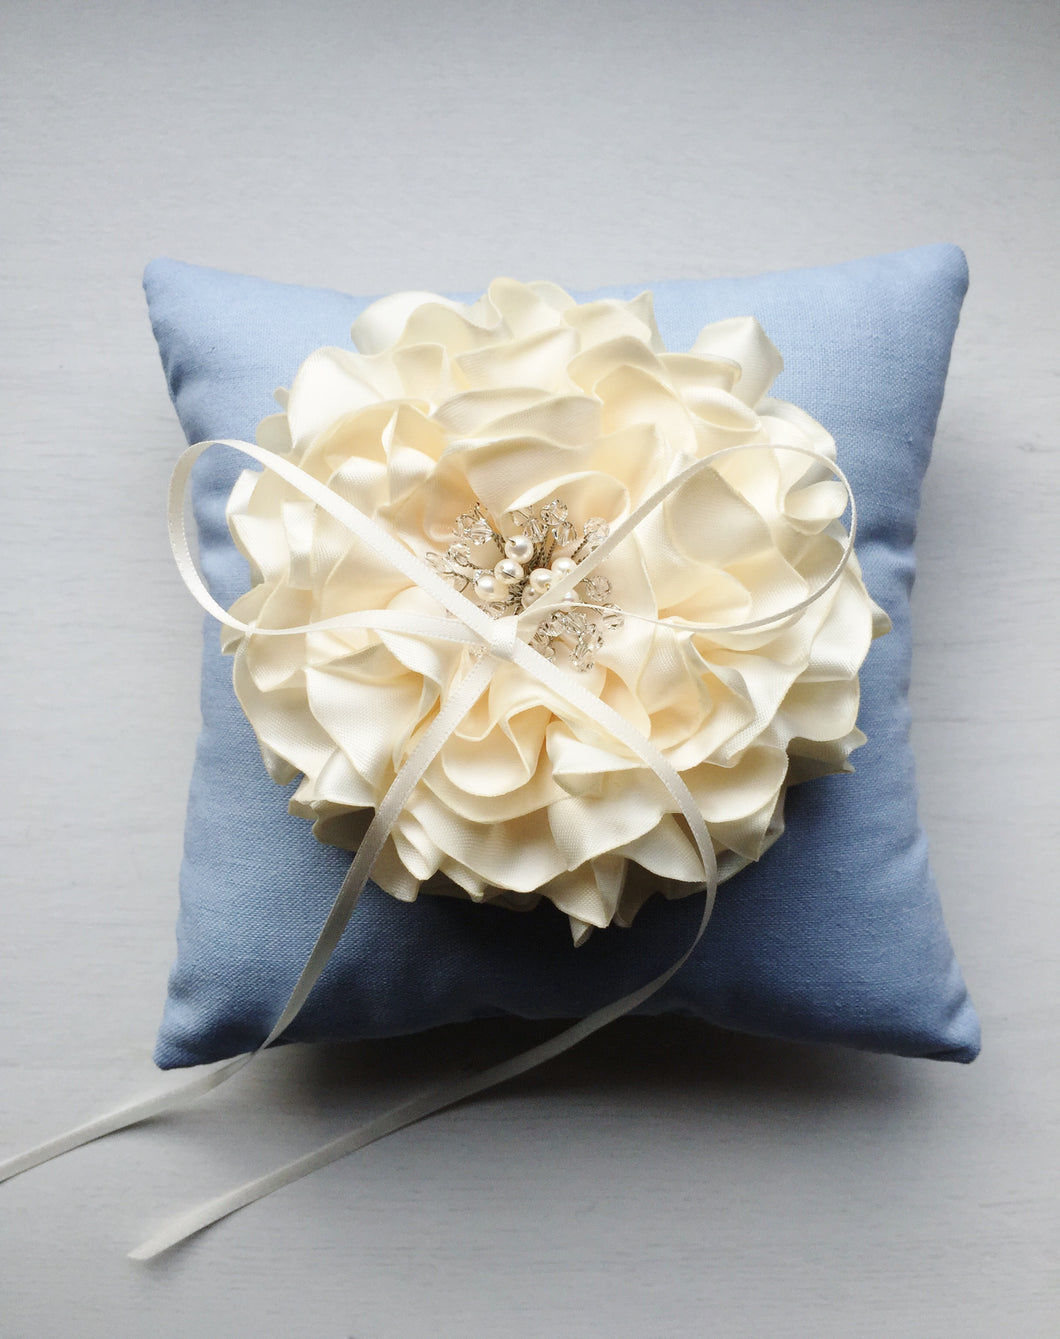 Signature Peony Ring Pillow in Vintage Sky Blue and Cream Peony